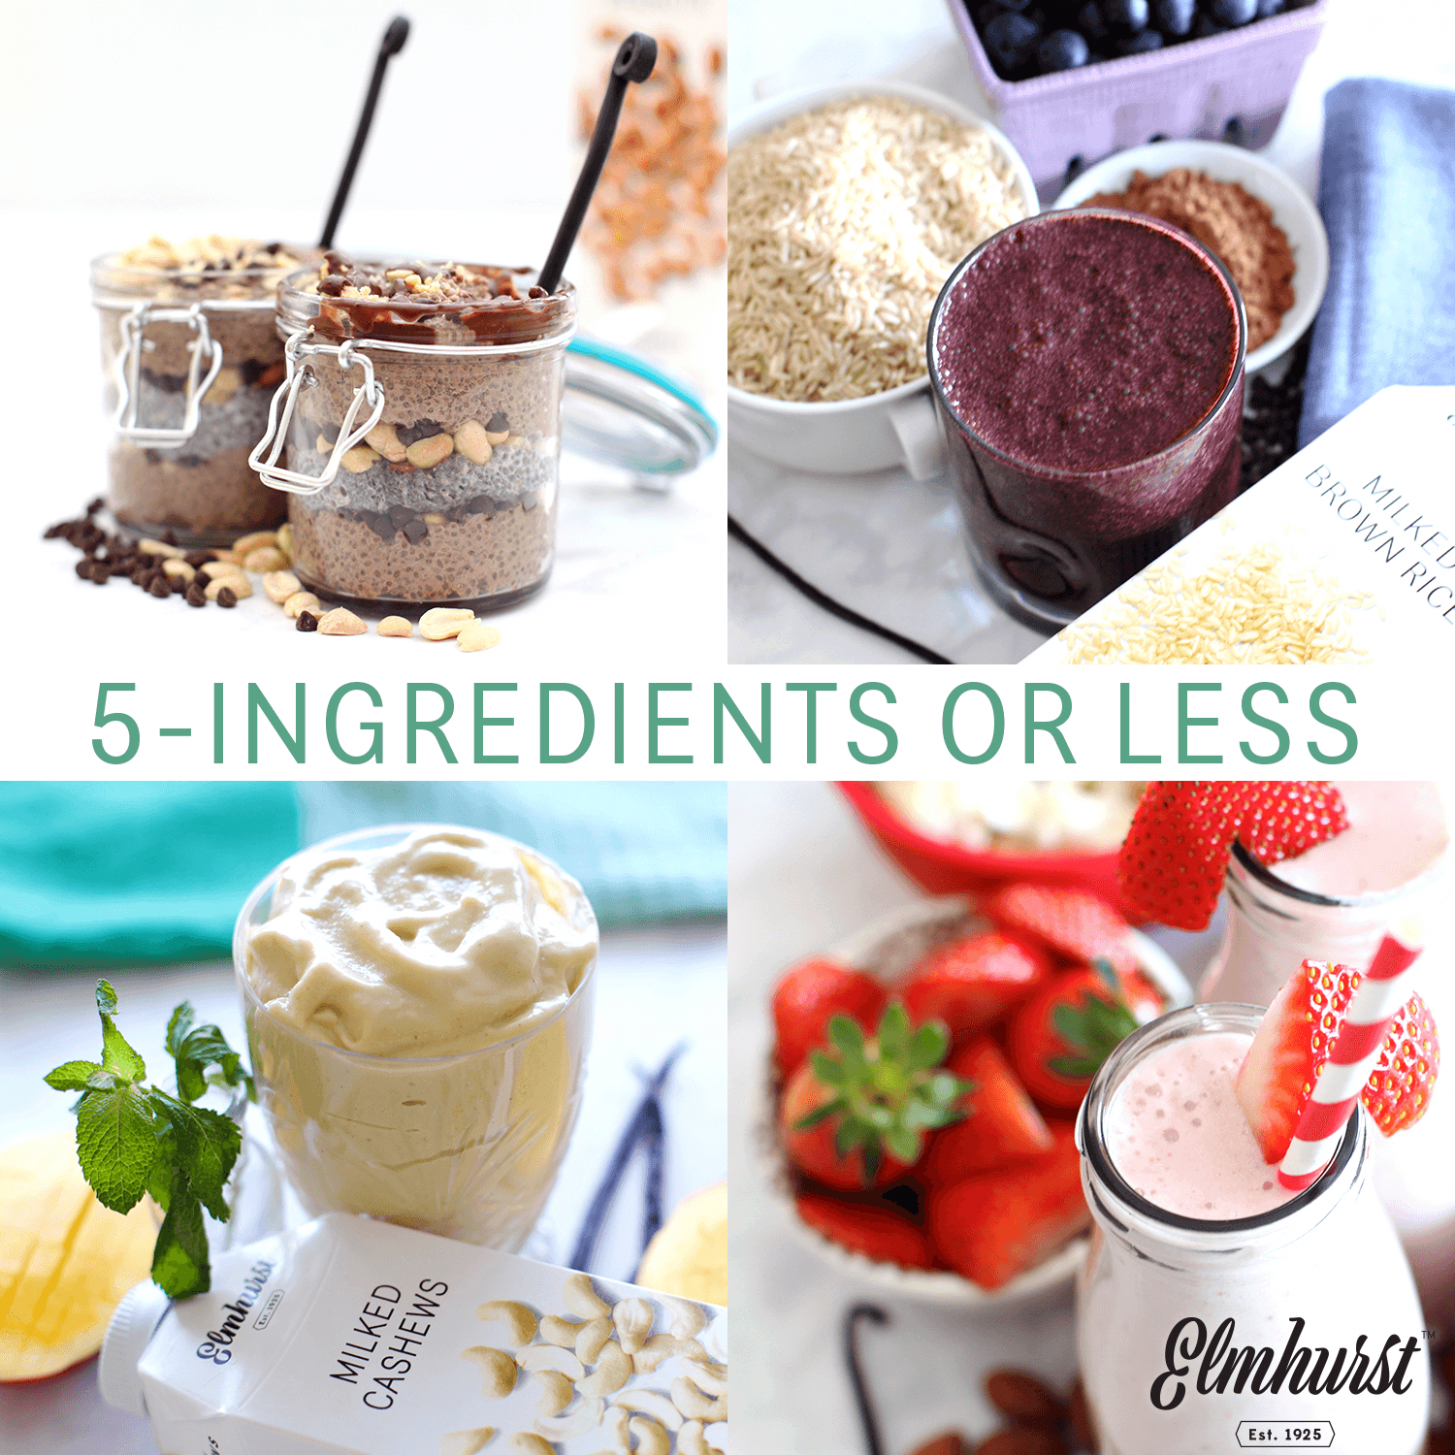 8-Ingredients or Less. Recipes that contain no more than 8 ...